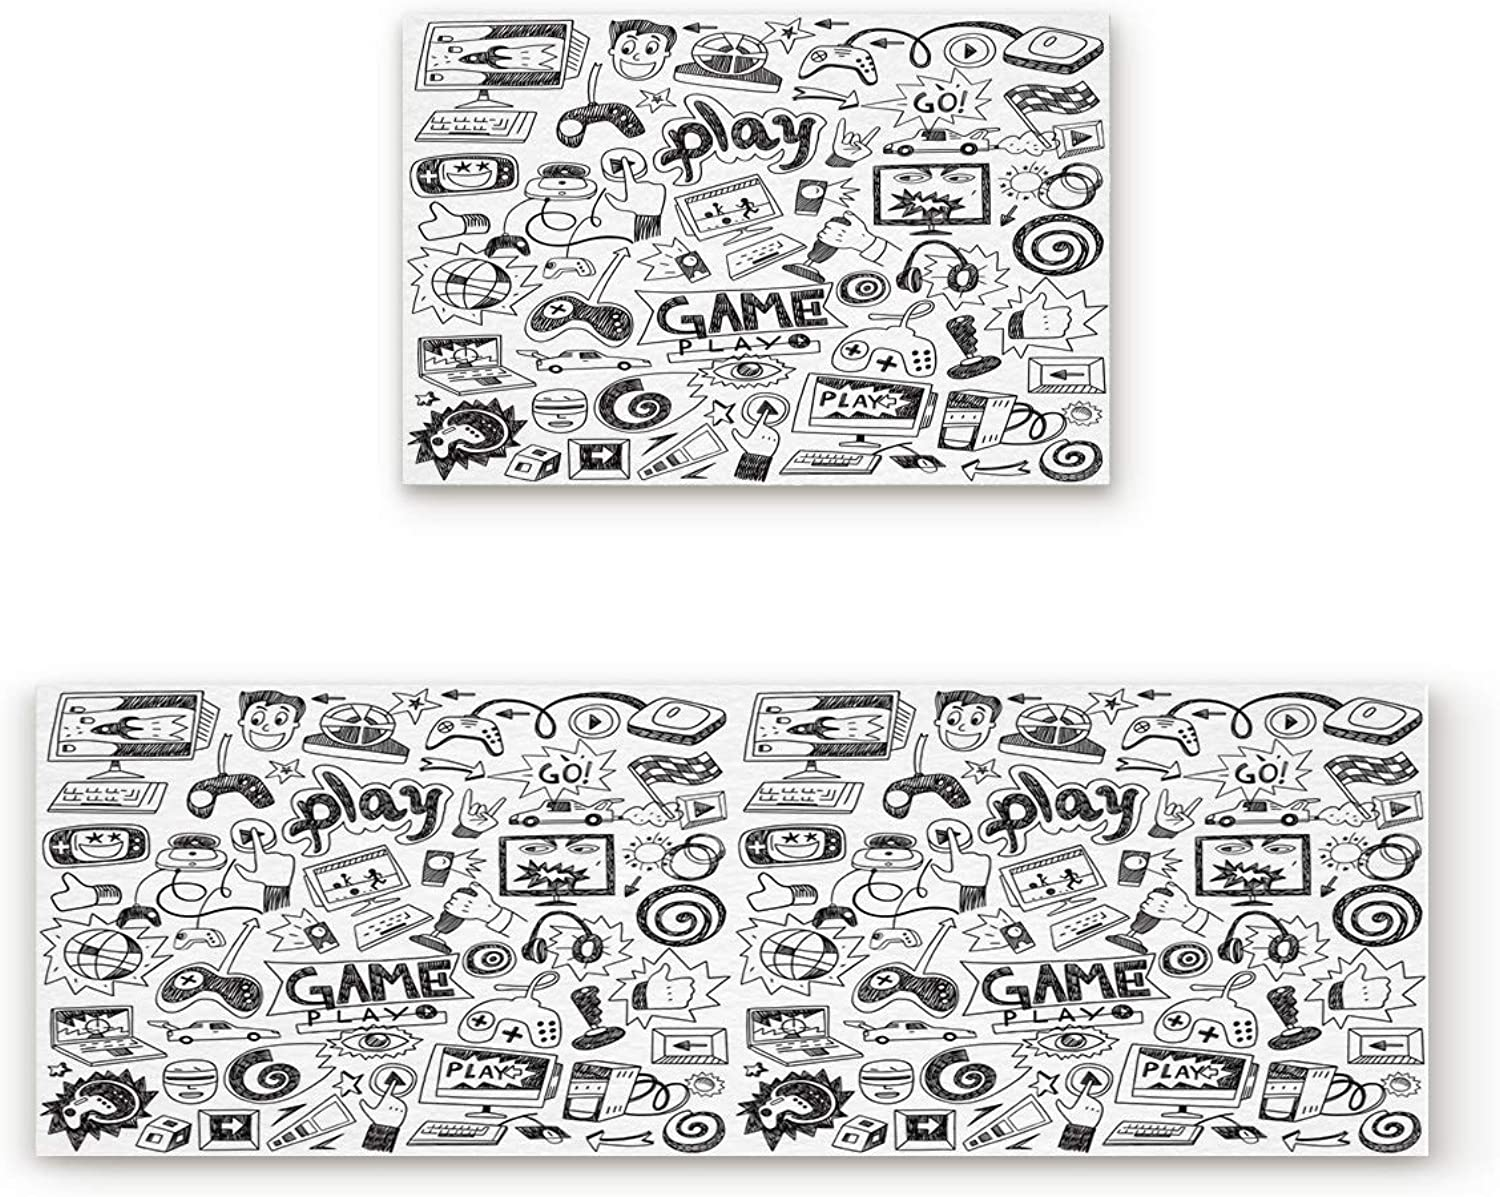 Aomike 2 Piece Non-Slip Kitchen Mat Rubber Backing Doormat Black and White Sketch Play Game Theme Runner Rug Set, Hallway Living Room Balcony Bathroom Carpet Sets (19.7  x 31.5 +19.7  x 47.2 )